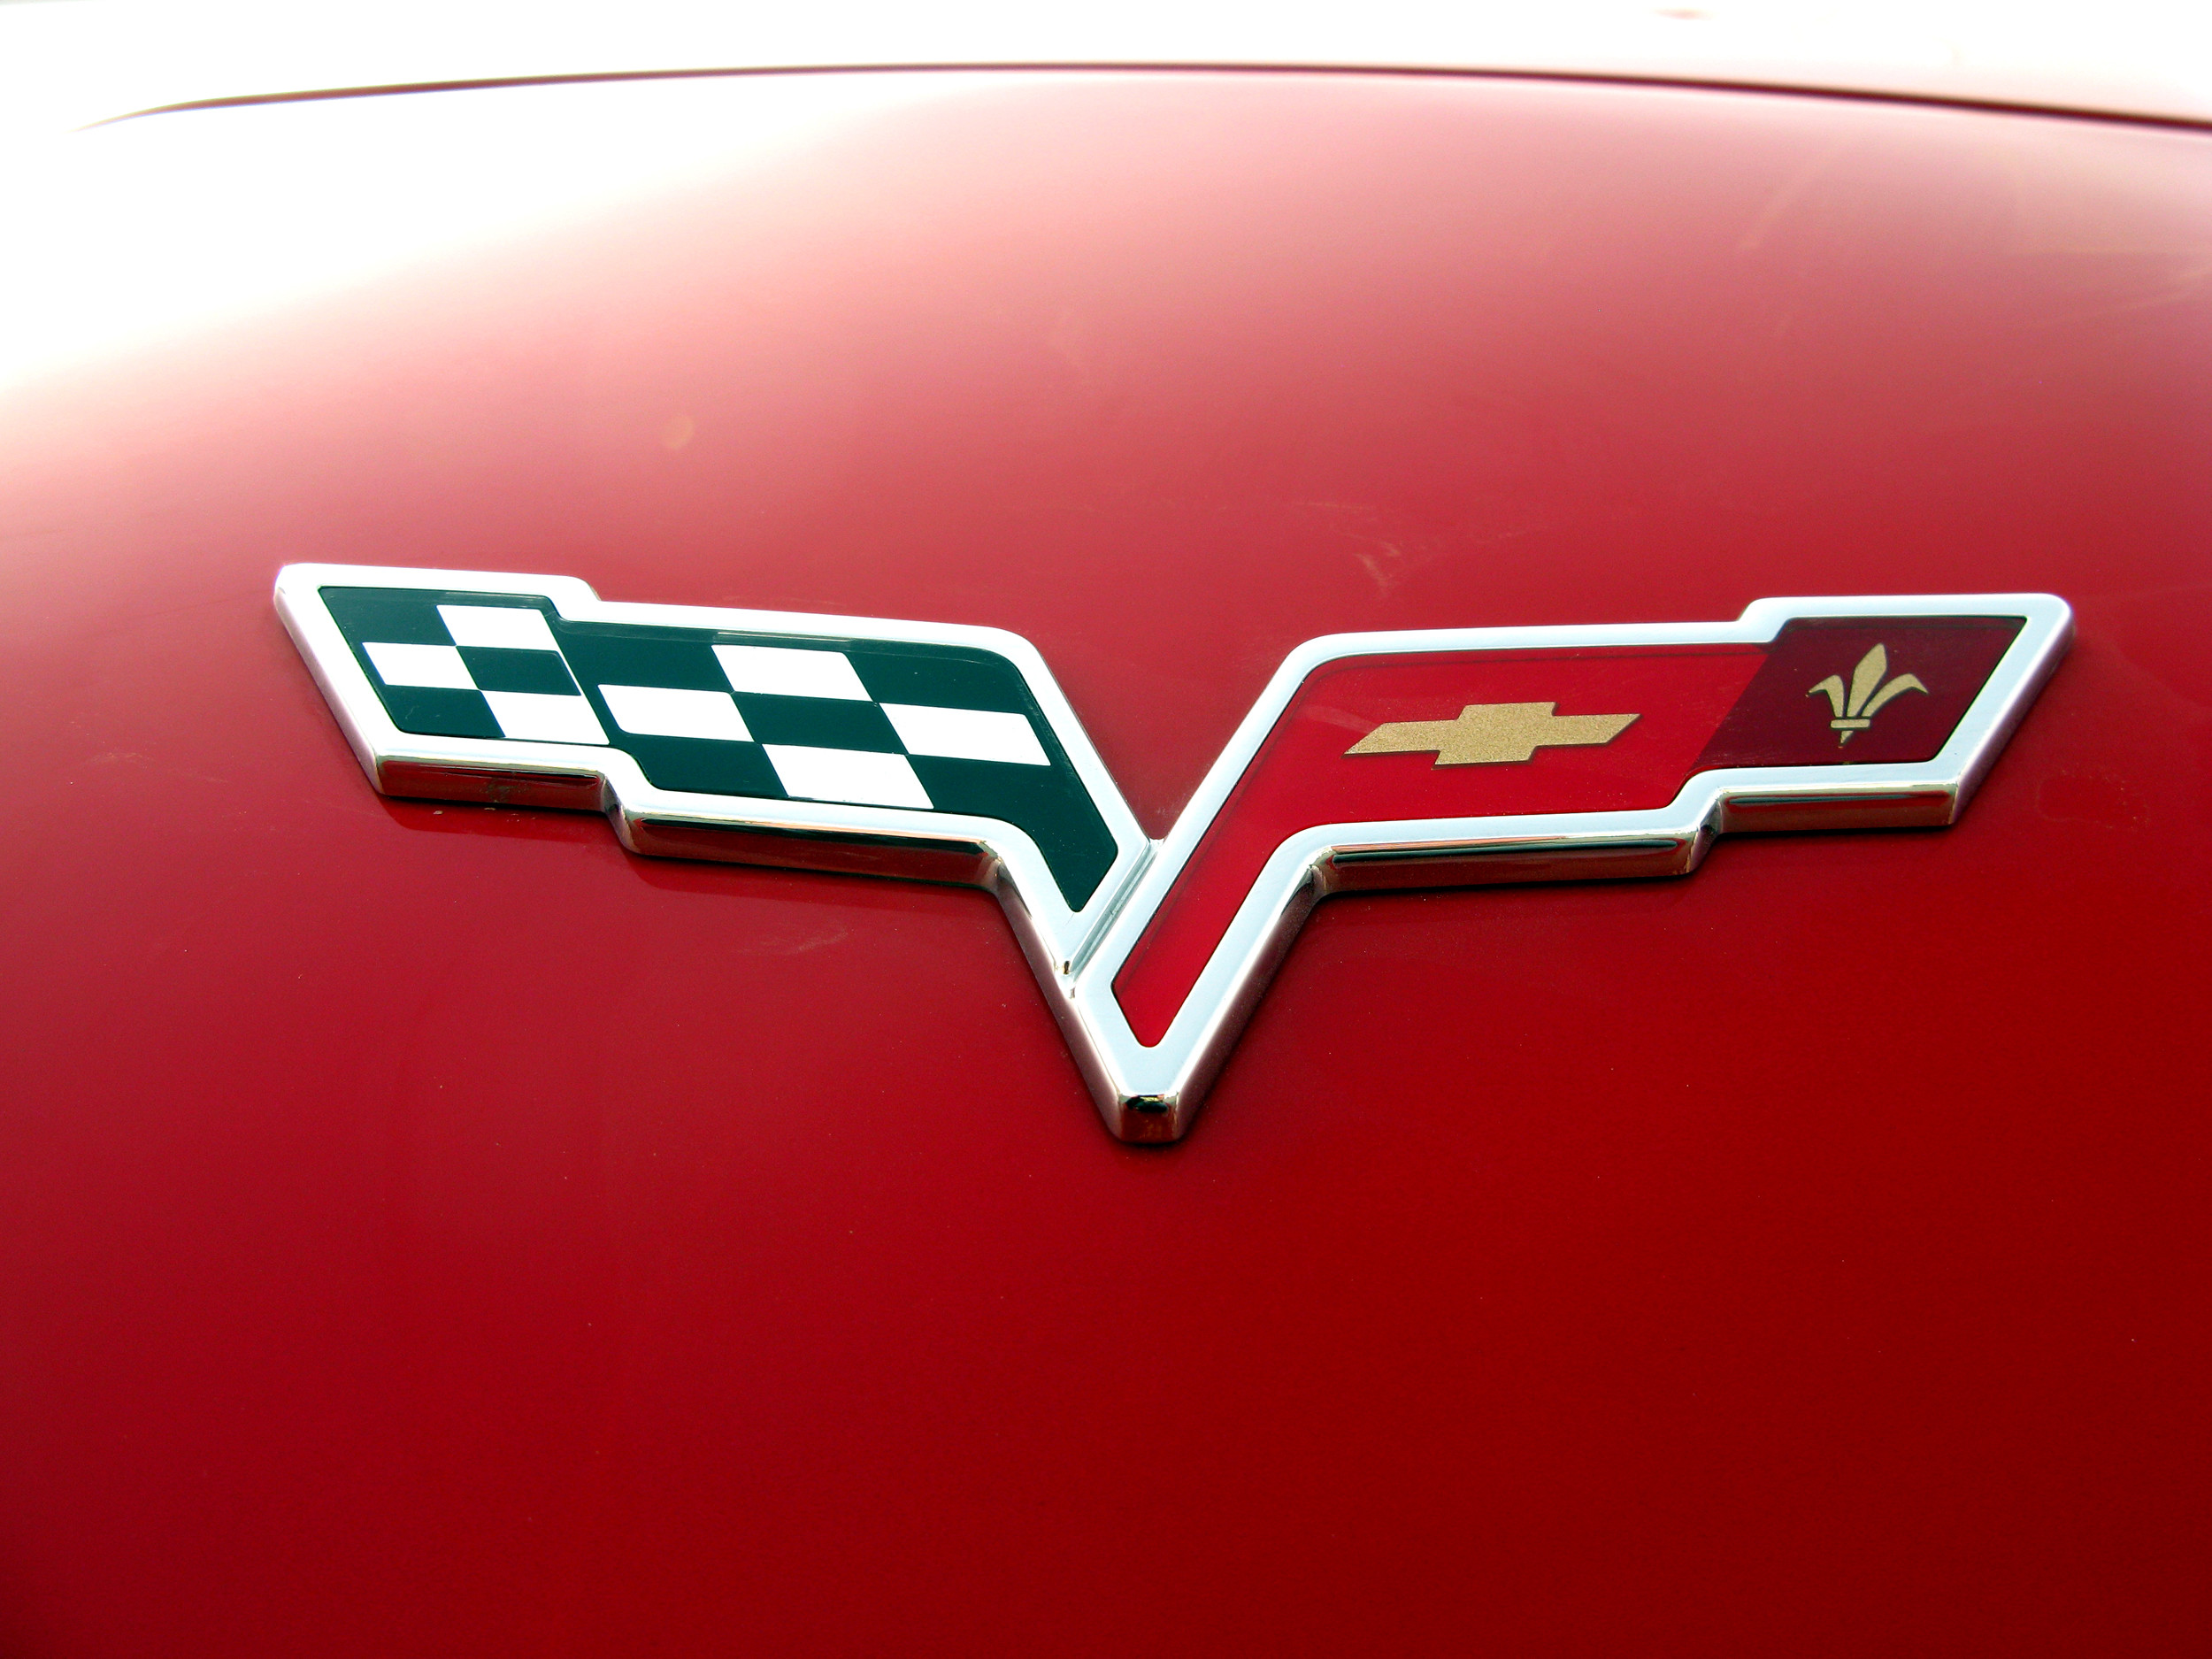 2500x1875 Chevrolet Logo Wallpaper Images | Crazy Gallery